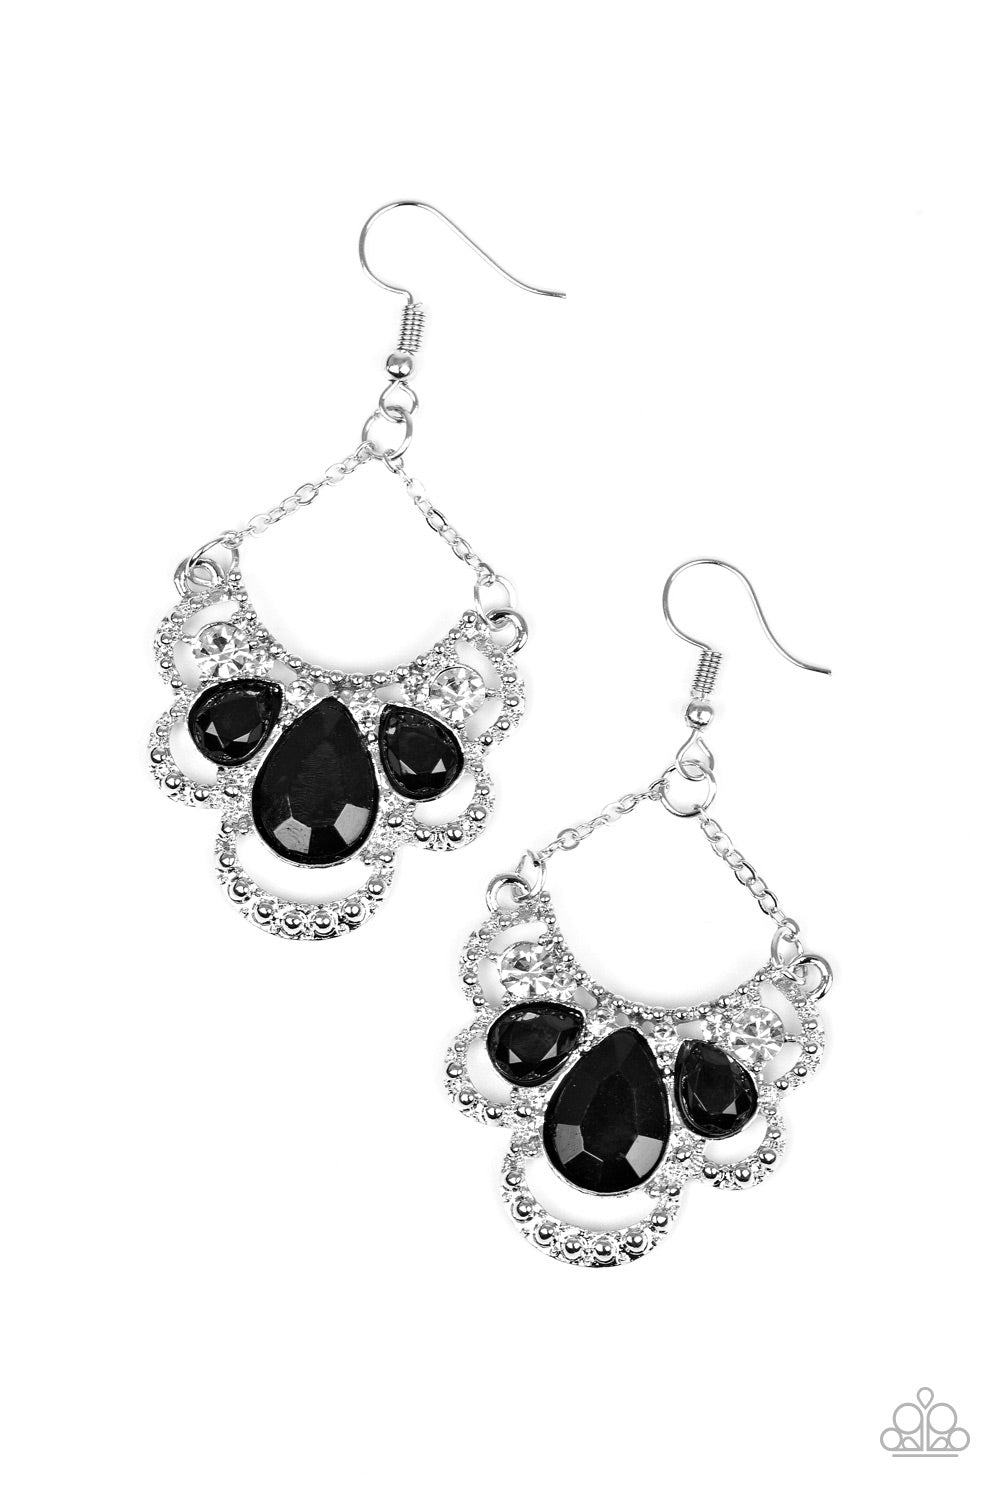 Paparazzi Accessories - Paparazzi Caribbean Royalty Black Teardrop Earring - Earrings